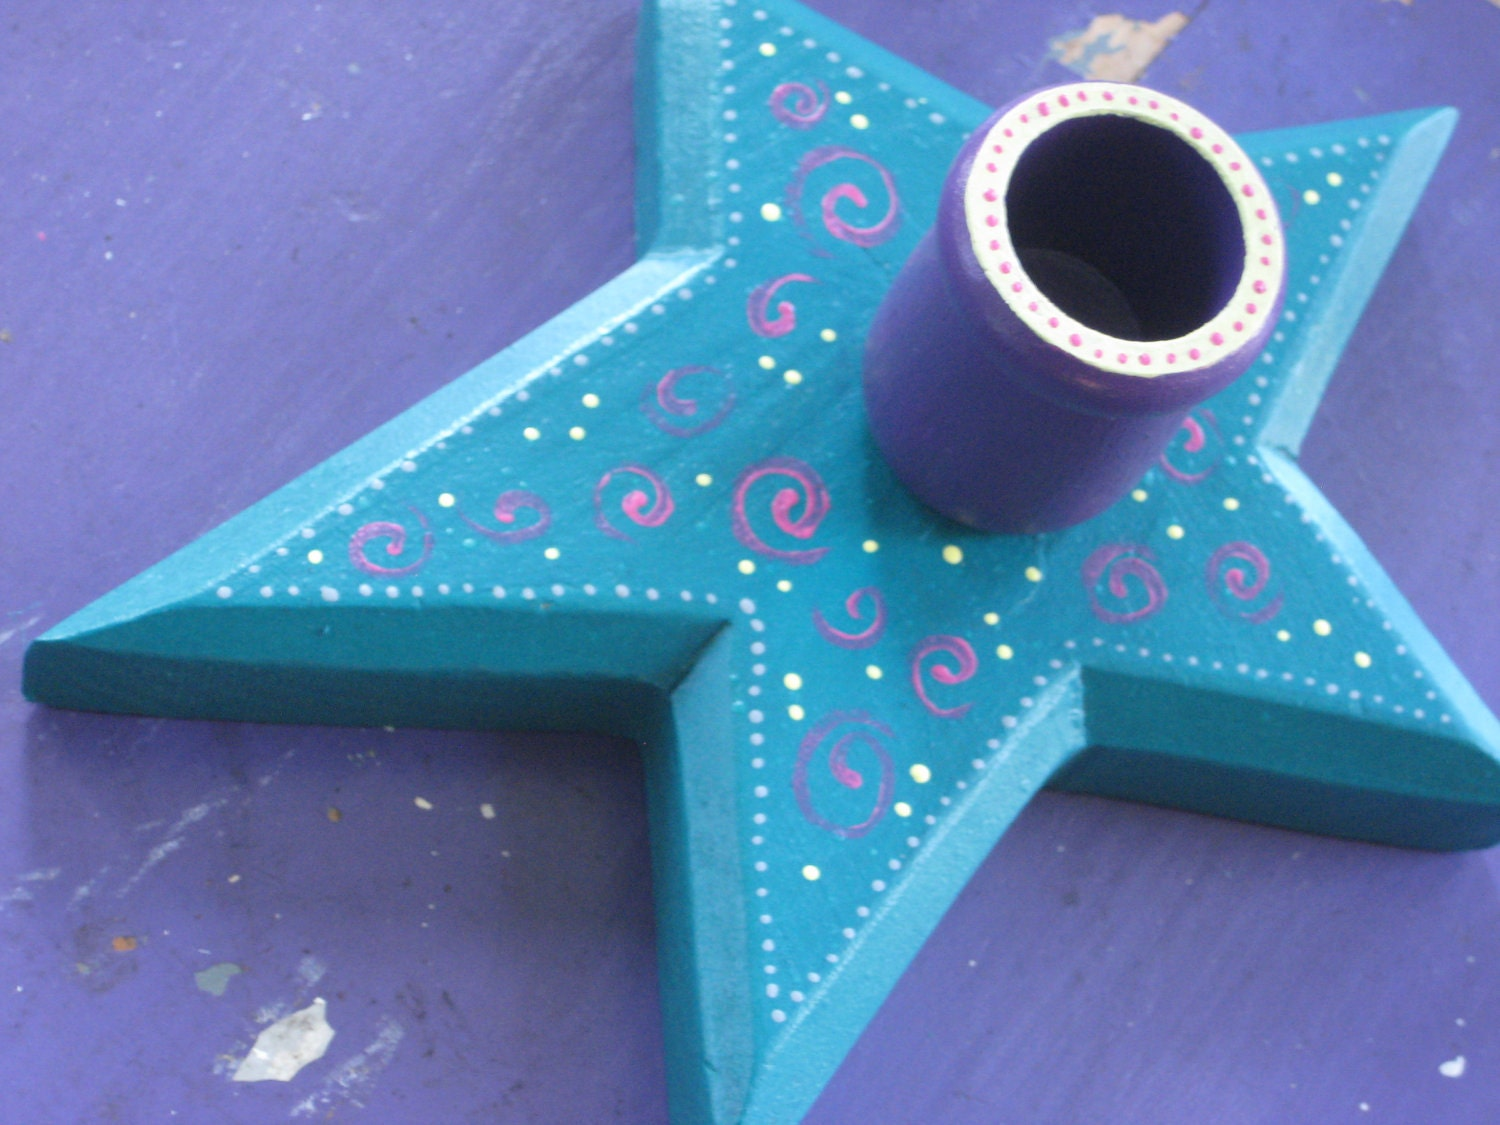 Christmas Star Candle Holder - Teal and Purple - Whimsical Upcycled Folk Art